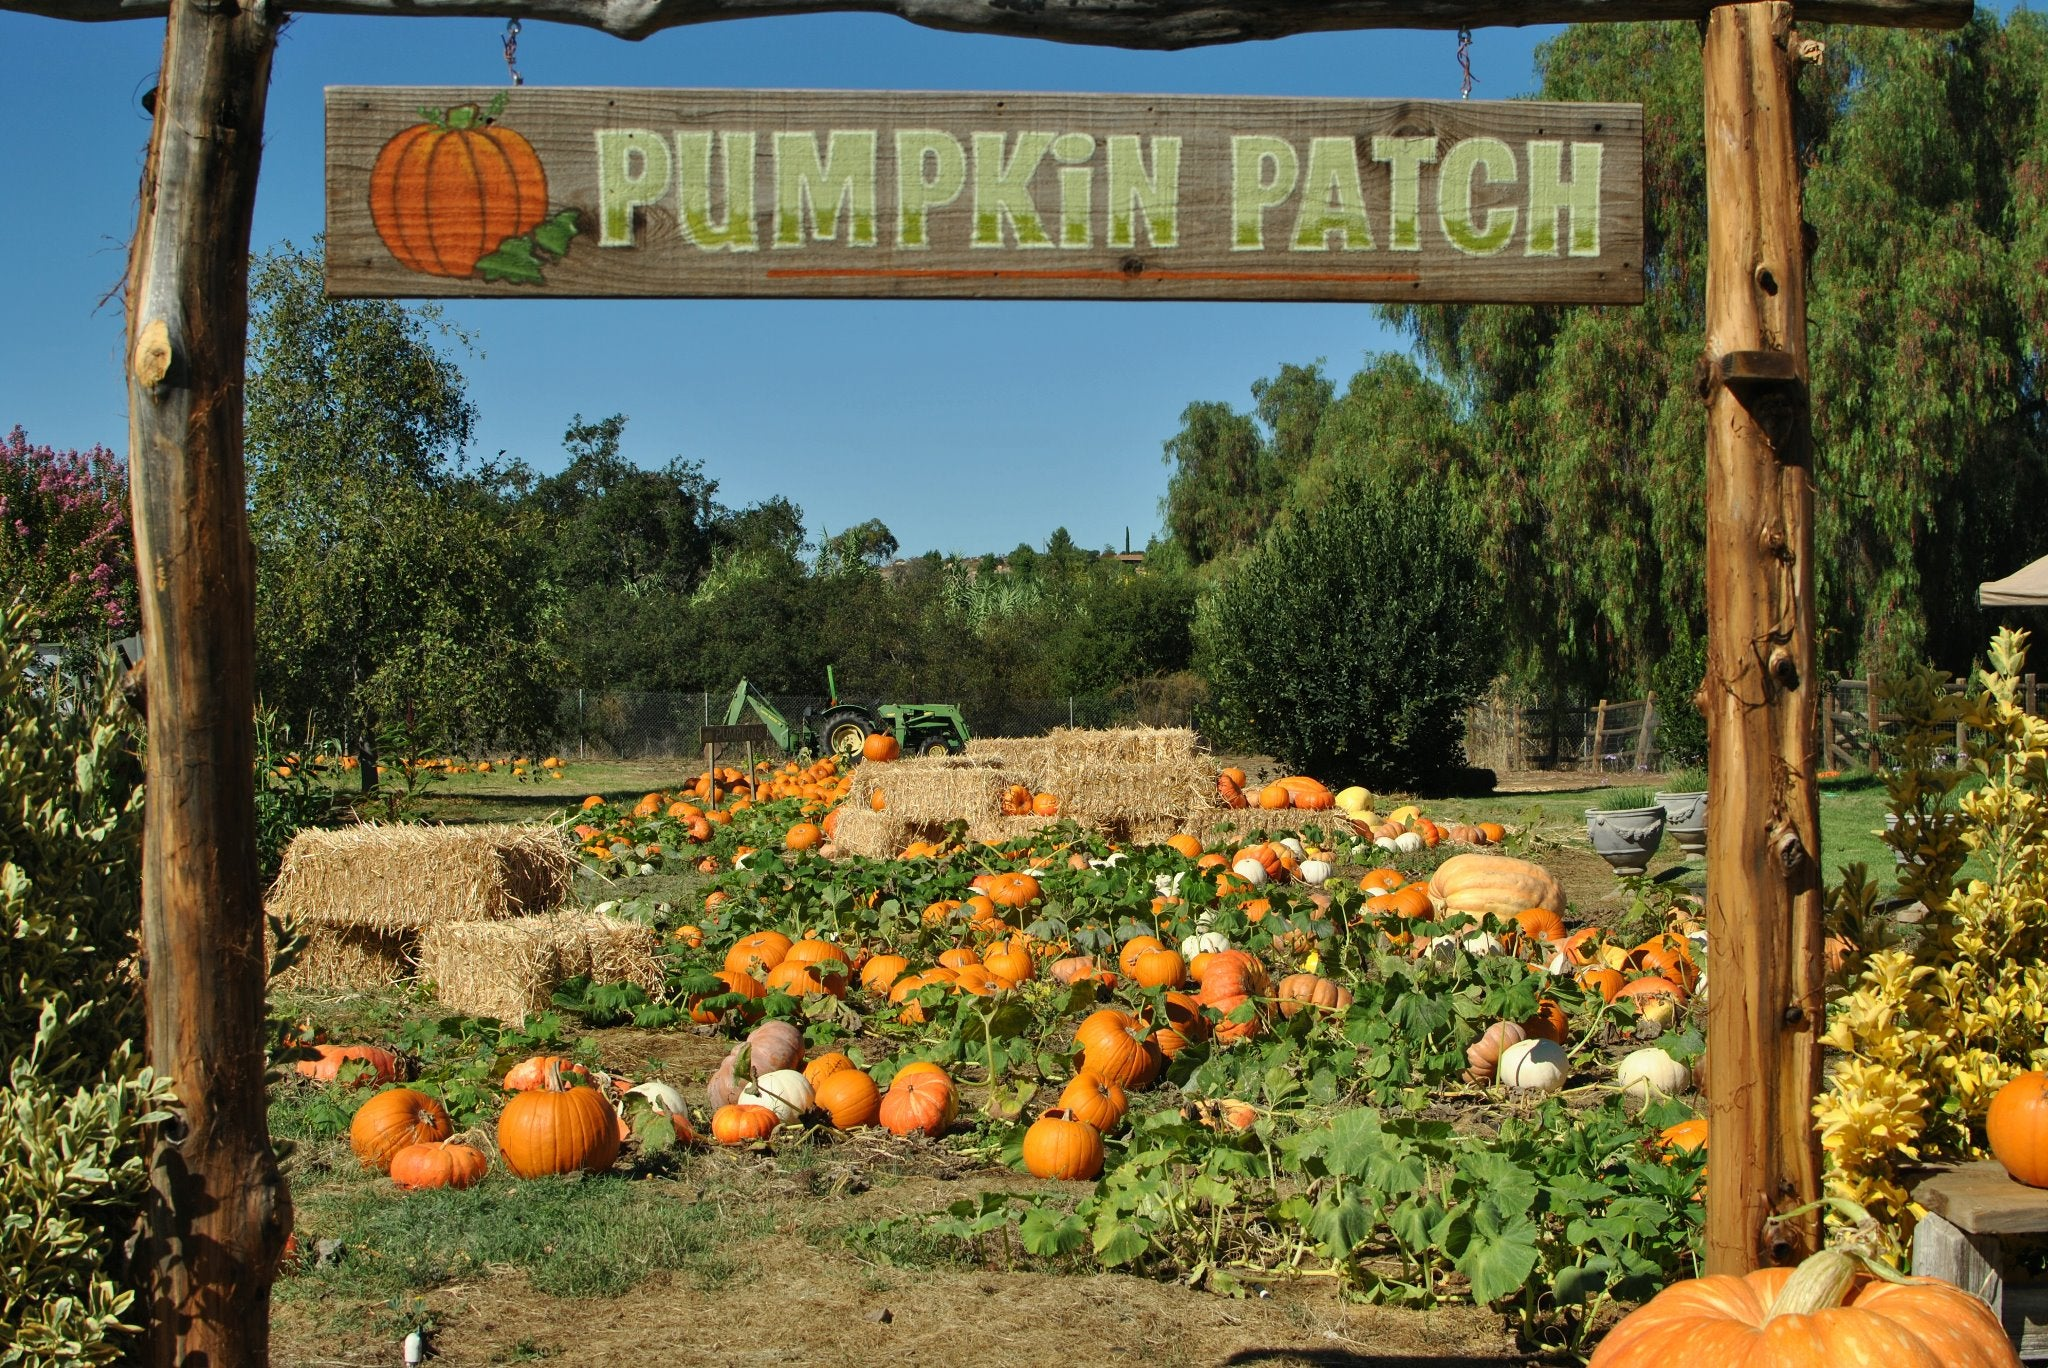 Pumpkin patch with a tractor and hay bales